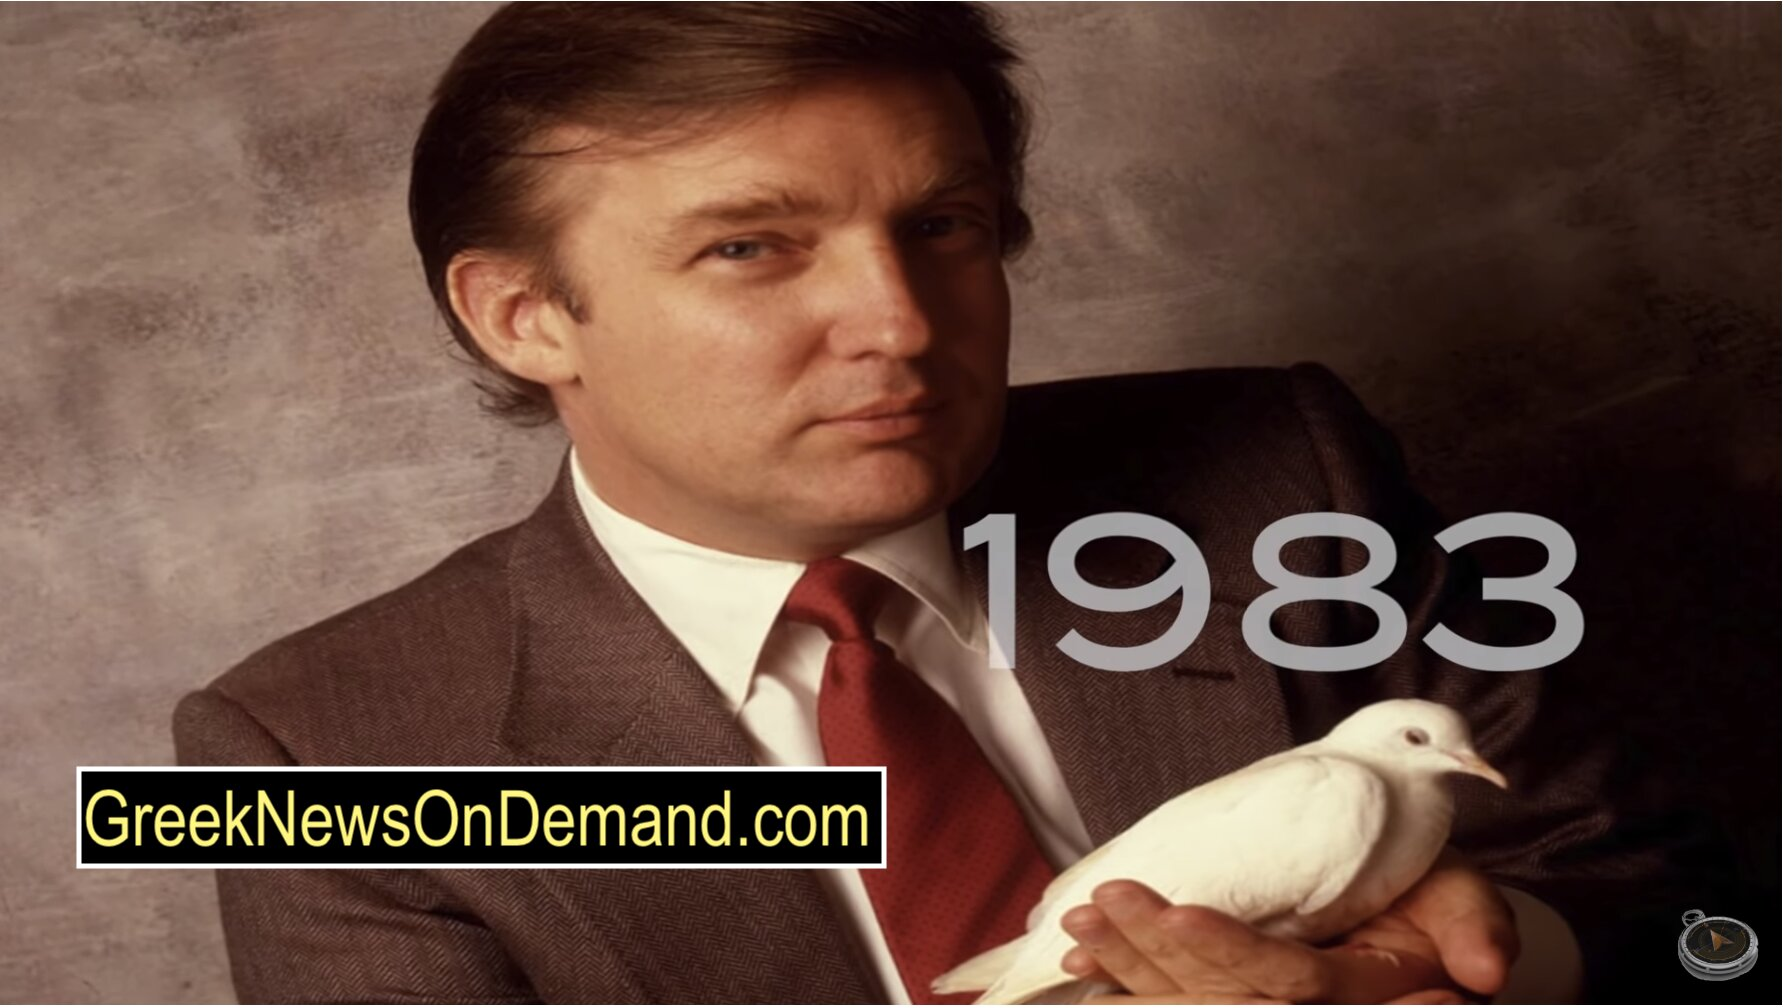 According to Trump HIMSELF, his collusion with the…RUSSIANS dates back to the 1980s!!!